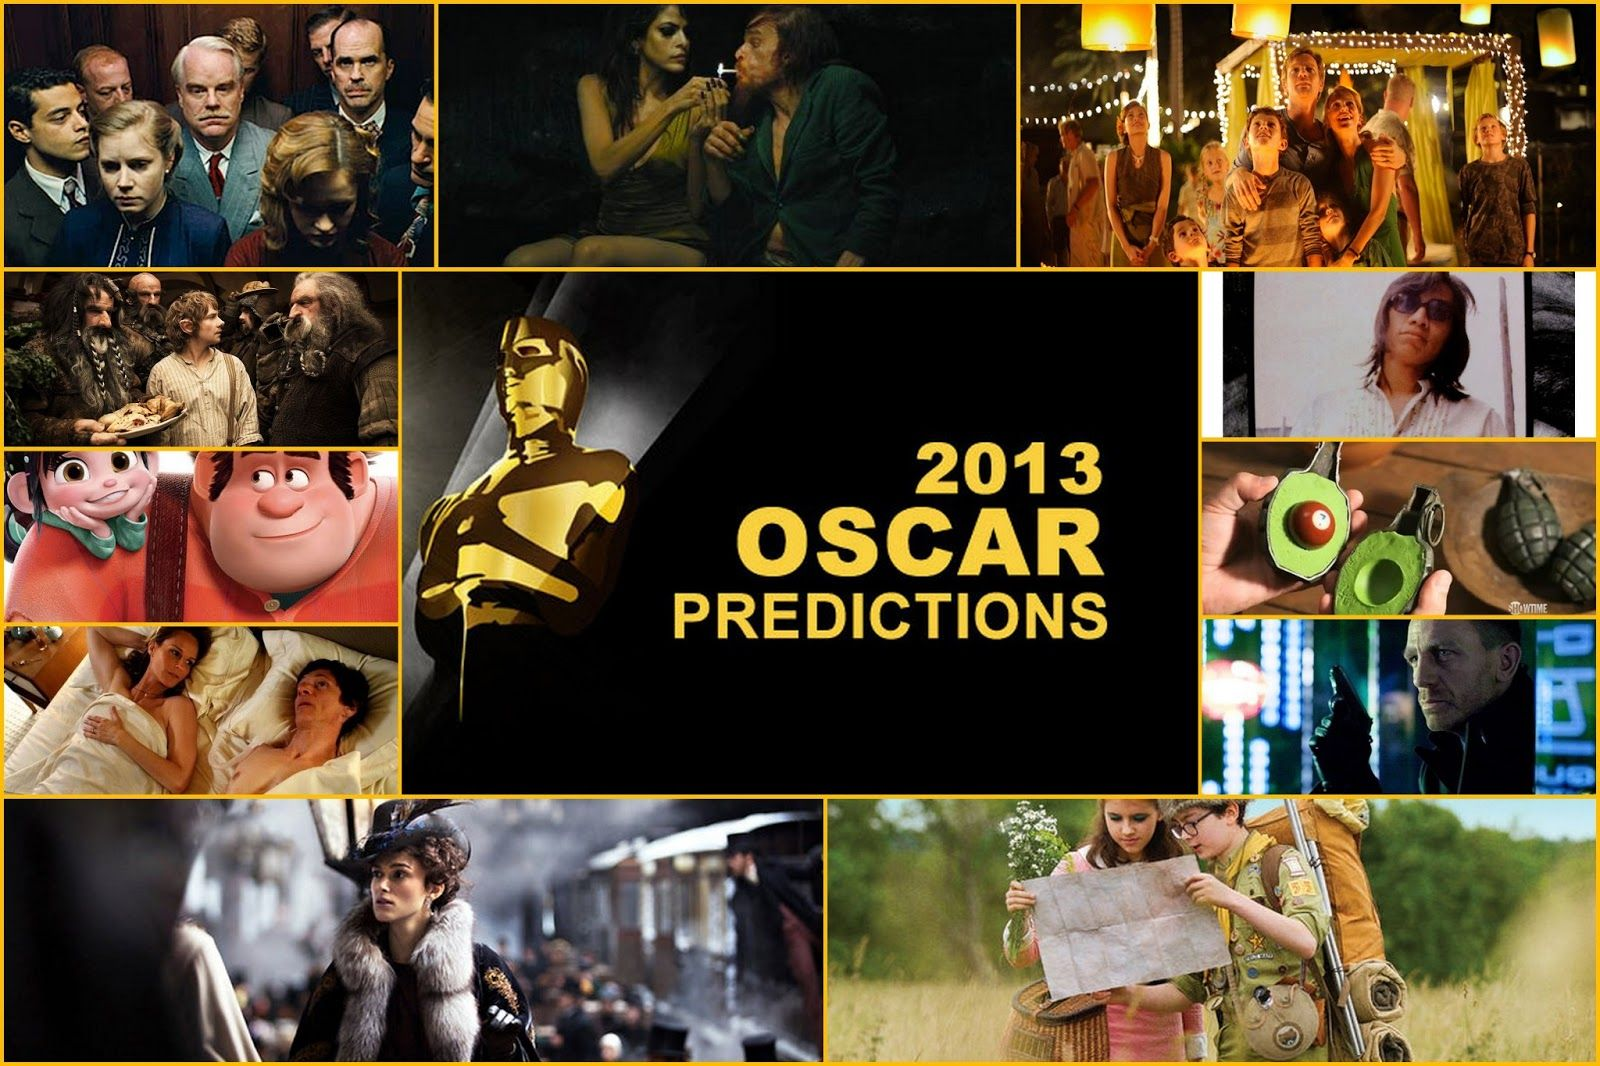 It's on! MoviefiedNYC's 2013 Daring Oscar Predictions and who we think SHOULD WIN! http://www.moviefiednyc.com/2013/02/its-on-moviefiednycs-2013-daring-oscar.html